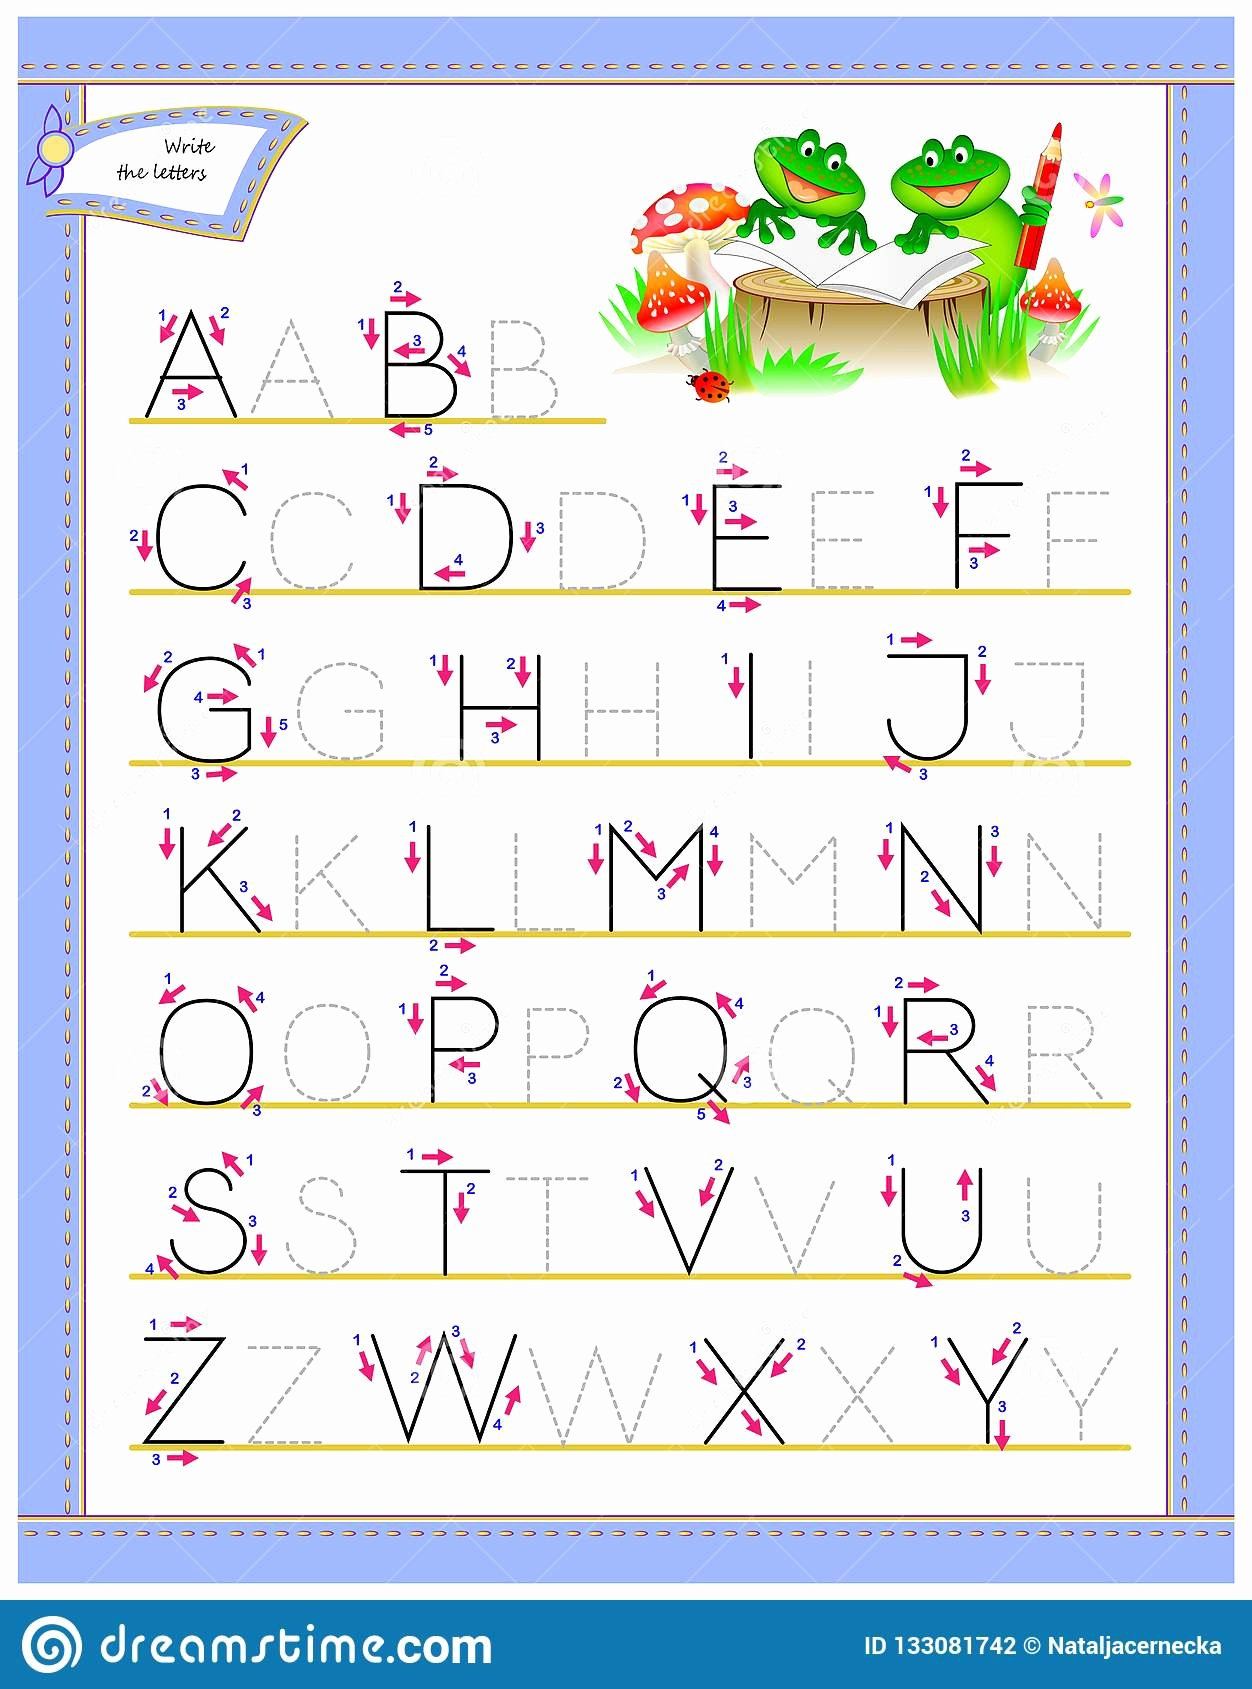 Alphabet Worksheets for Preschoolers Tracing New Math Worksheet Alphabet Worksheets Kindergarten Writing